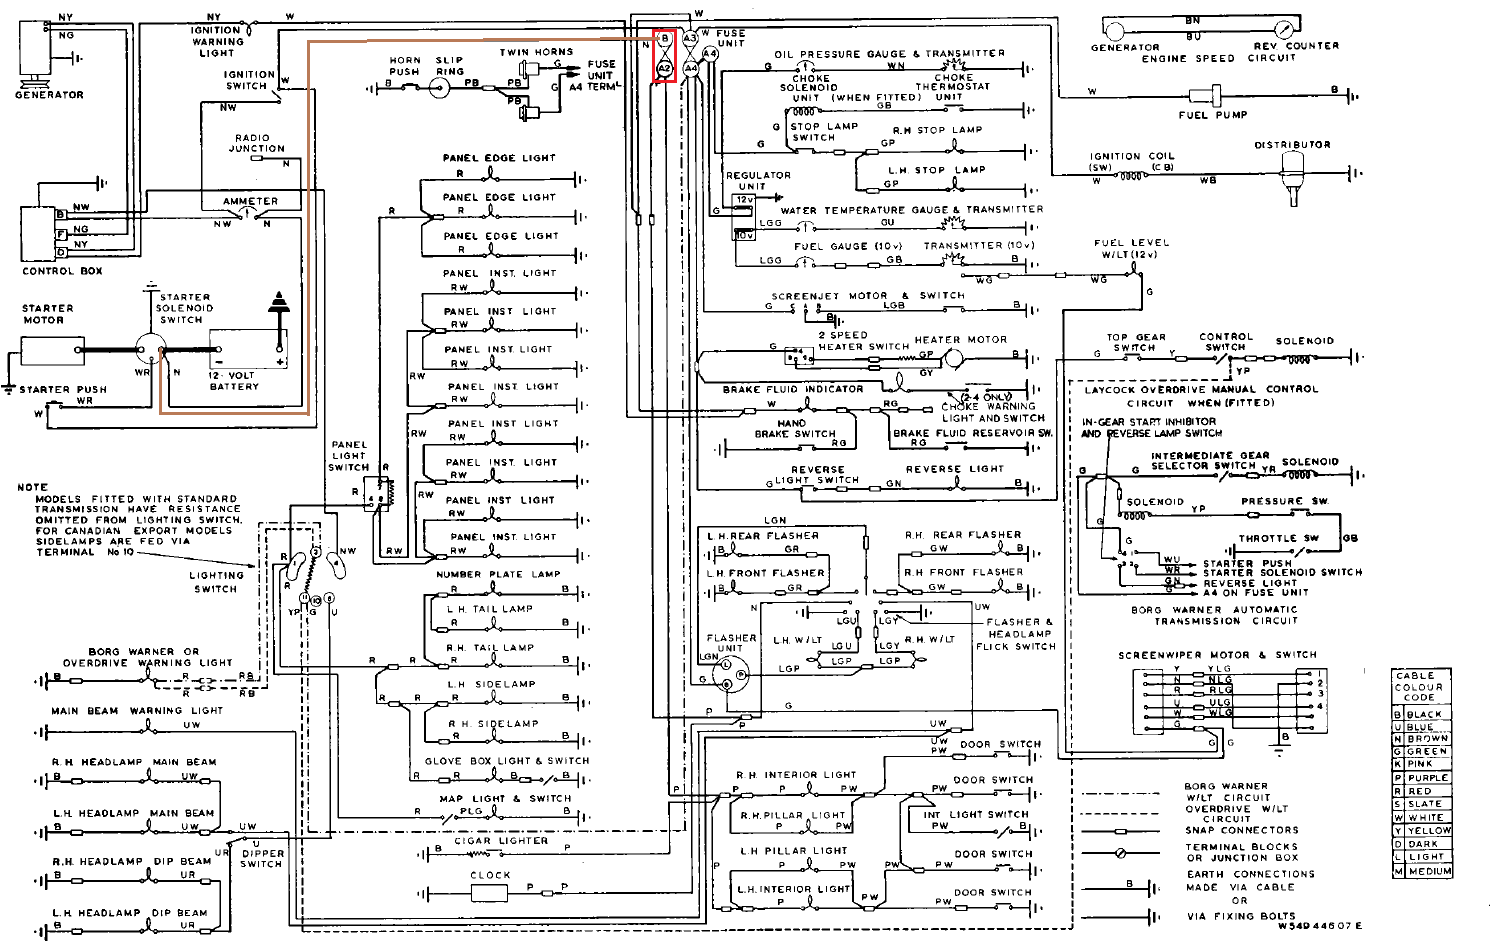 Jaguar Xk8 Wiring Diagram For